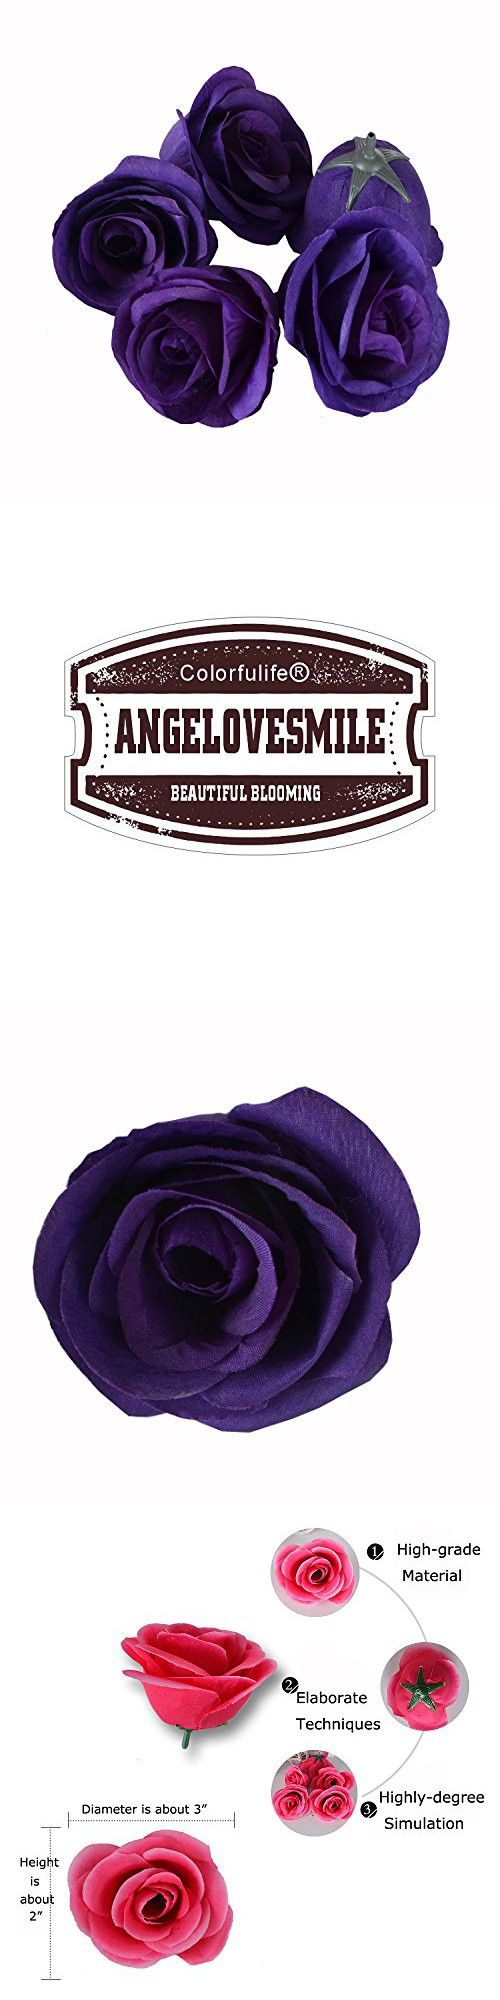 50pcs Artificial Silk 3.1 Rose Head Colorfulife/® Simulation Flower Beautiful Wedding Home Party Decoration Bridal Hair Decorative,9 Colors Dark Purple anglovesmile